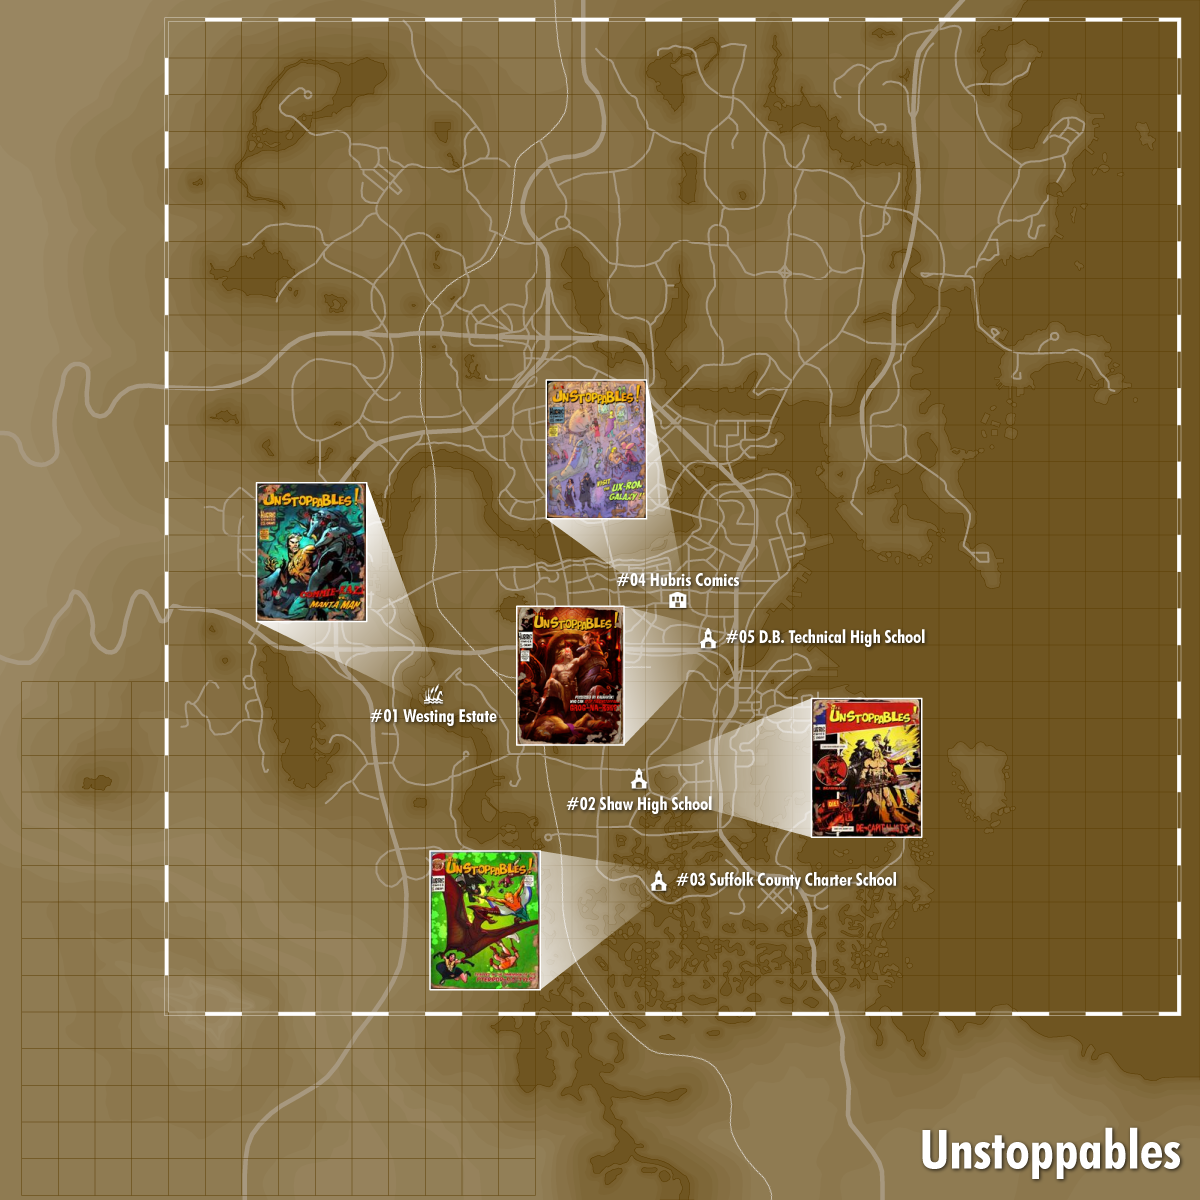 Unstoppables Locations Fallout 4 Map Fallout 4 Magazines Fallout 4 Tips